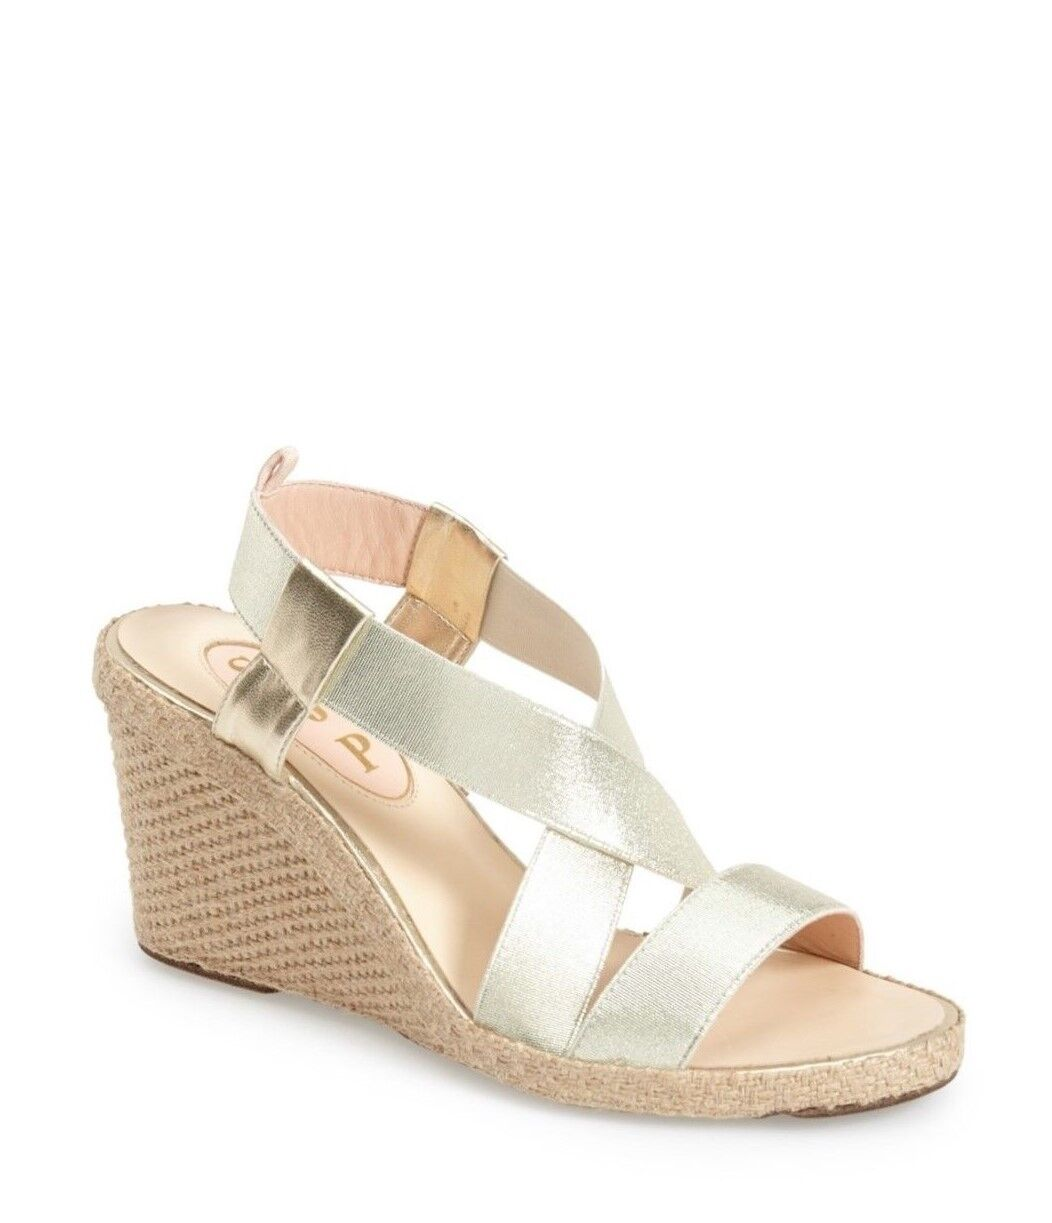 SJP by Sarah Jessica Parker Simone Wedge Sandal Dimensione 9 oro MSRP  245